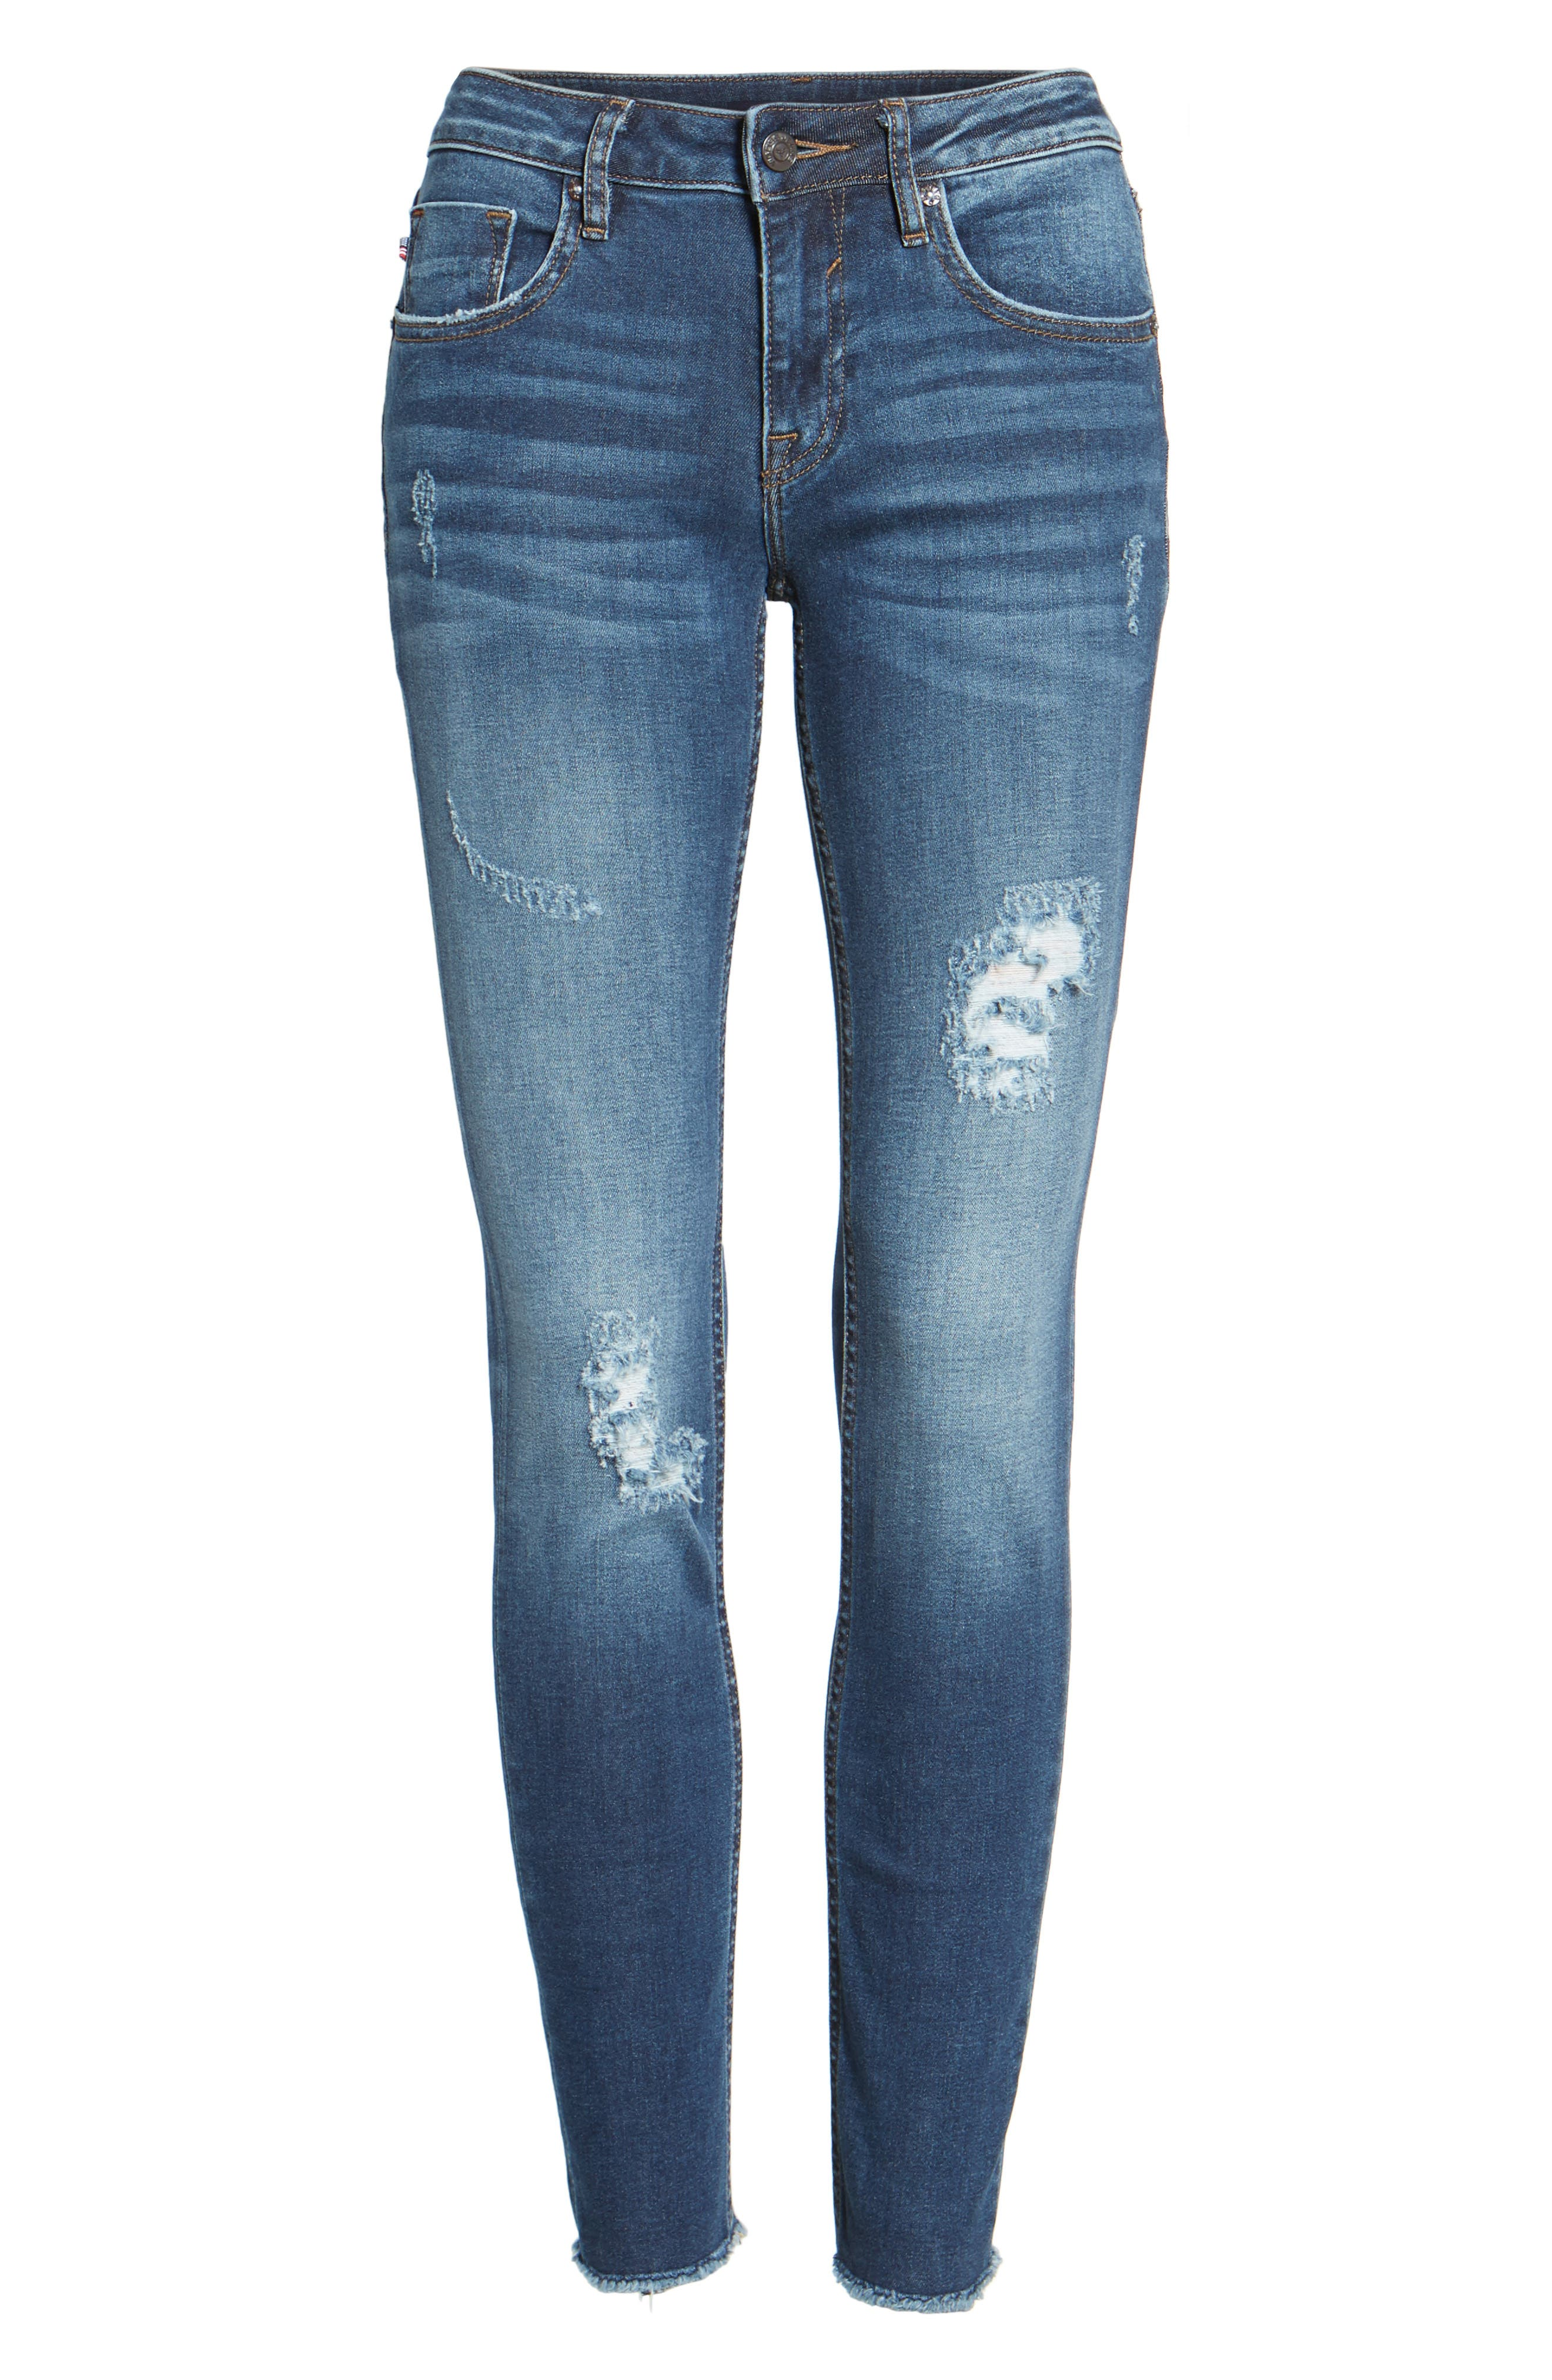 Jagger Distressed Skinny Jeans,                             Alternate thumbnail 6, color,                             403